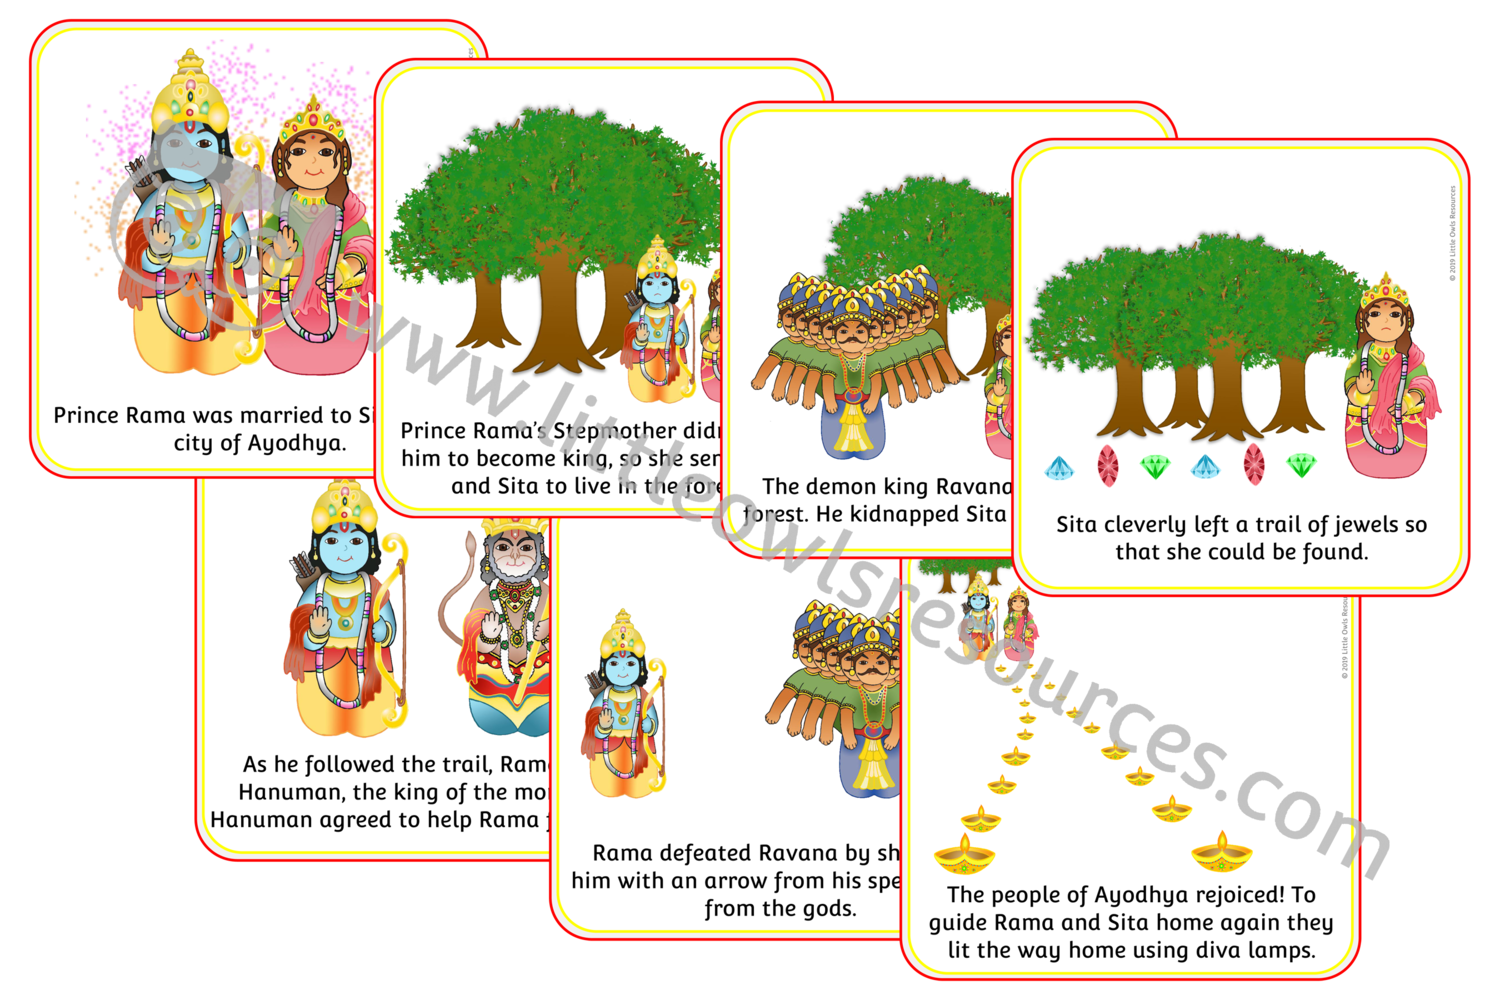 Free Diwali Story Sequence Cards Printable Early Years Ey Eyfs Resource Download Little Owls Resources Fre Diwali Story Diwali Activities Printable Cards [ 1000 x 1500 Pixel ]